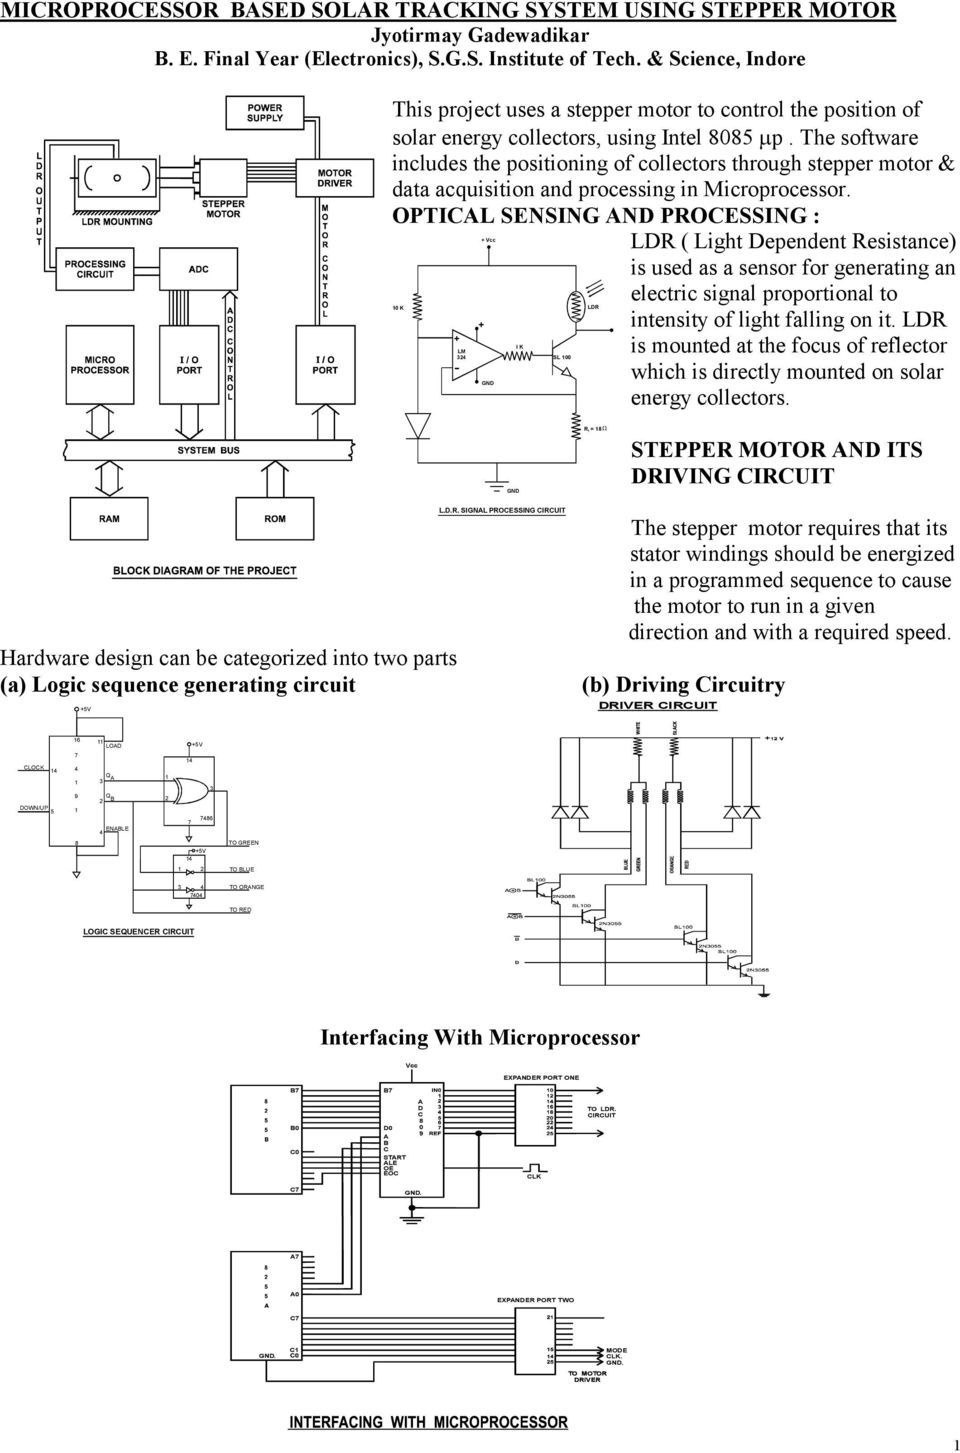 Interfacing With Microprocessor Pdf The Circuit Uses An Ldr Or Light Dependent Resistor Software Includes Positioning Of Collectors Through Stepper Motor Data Acquisition And Processing In